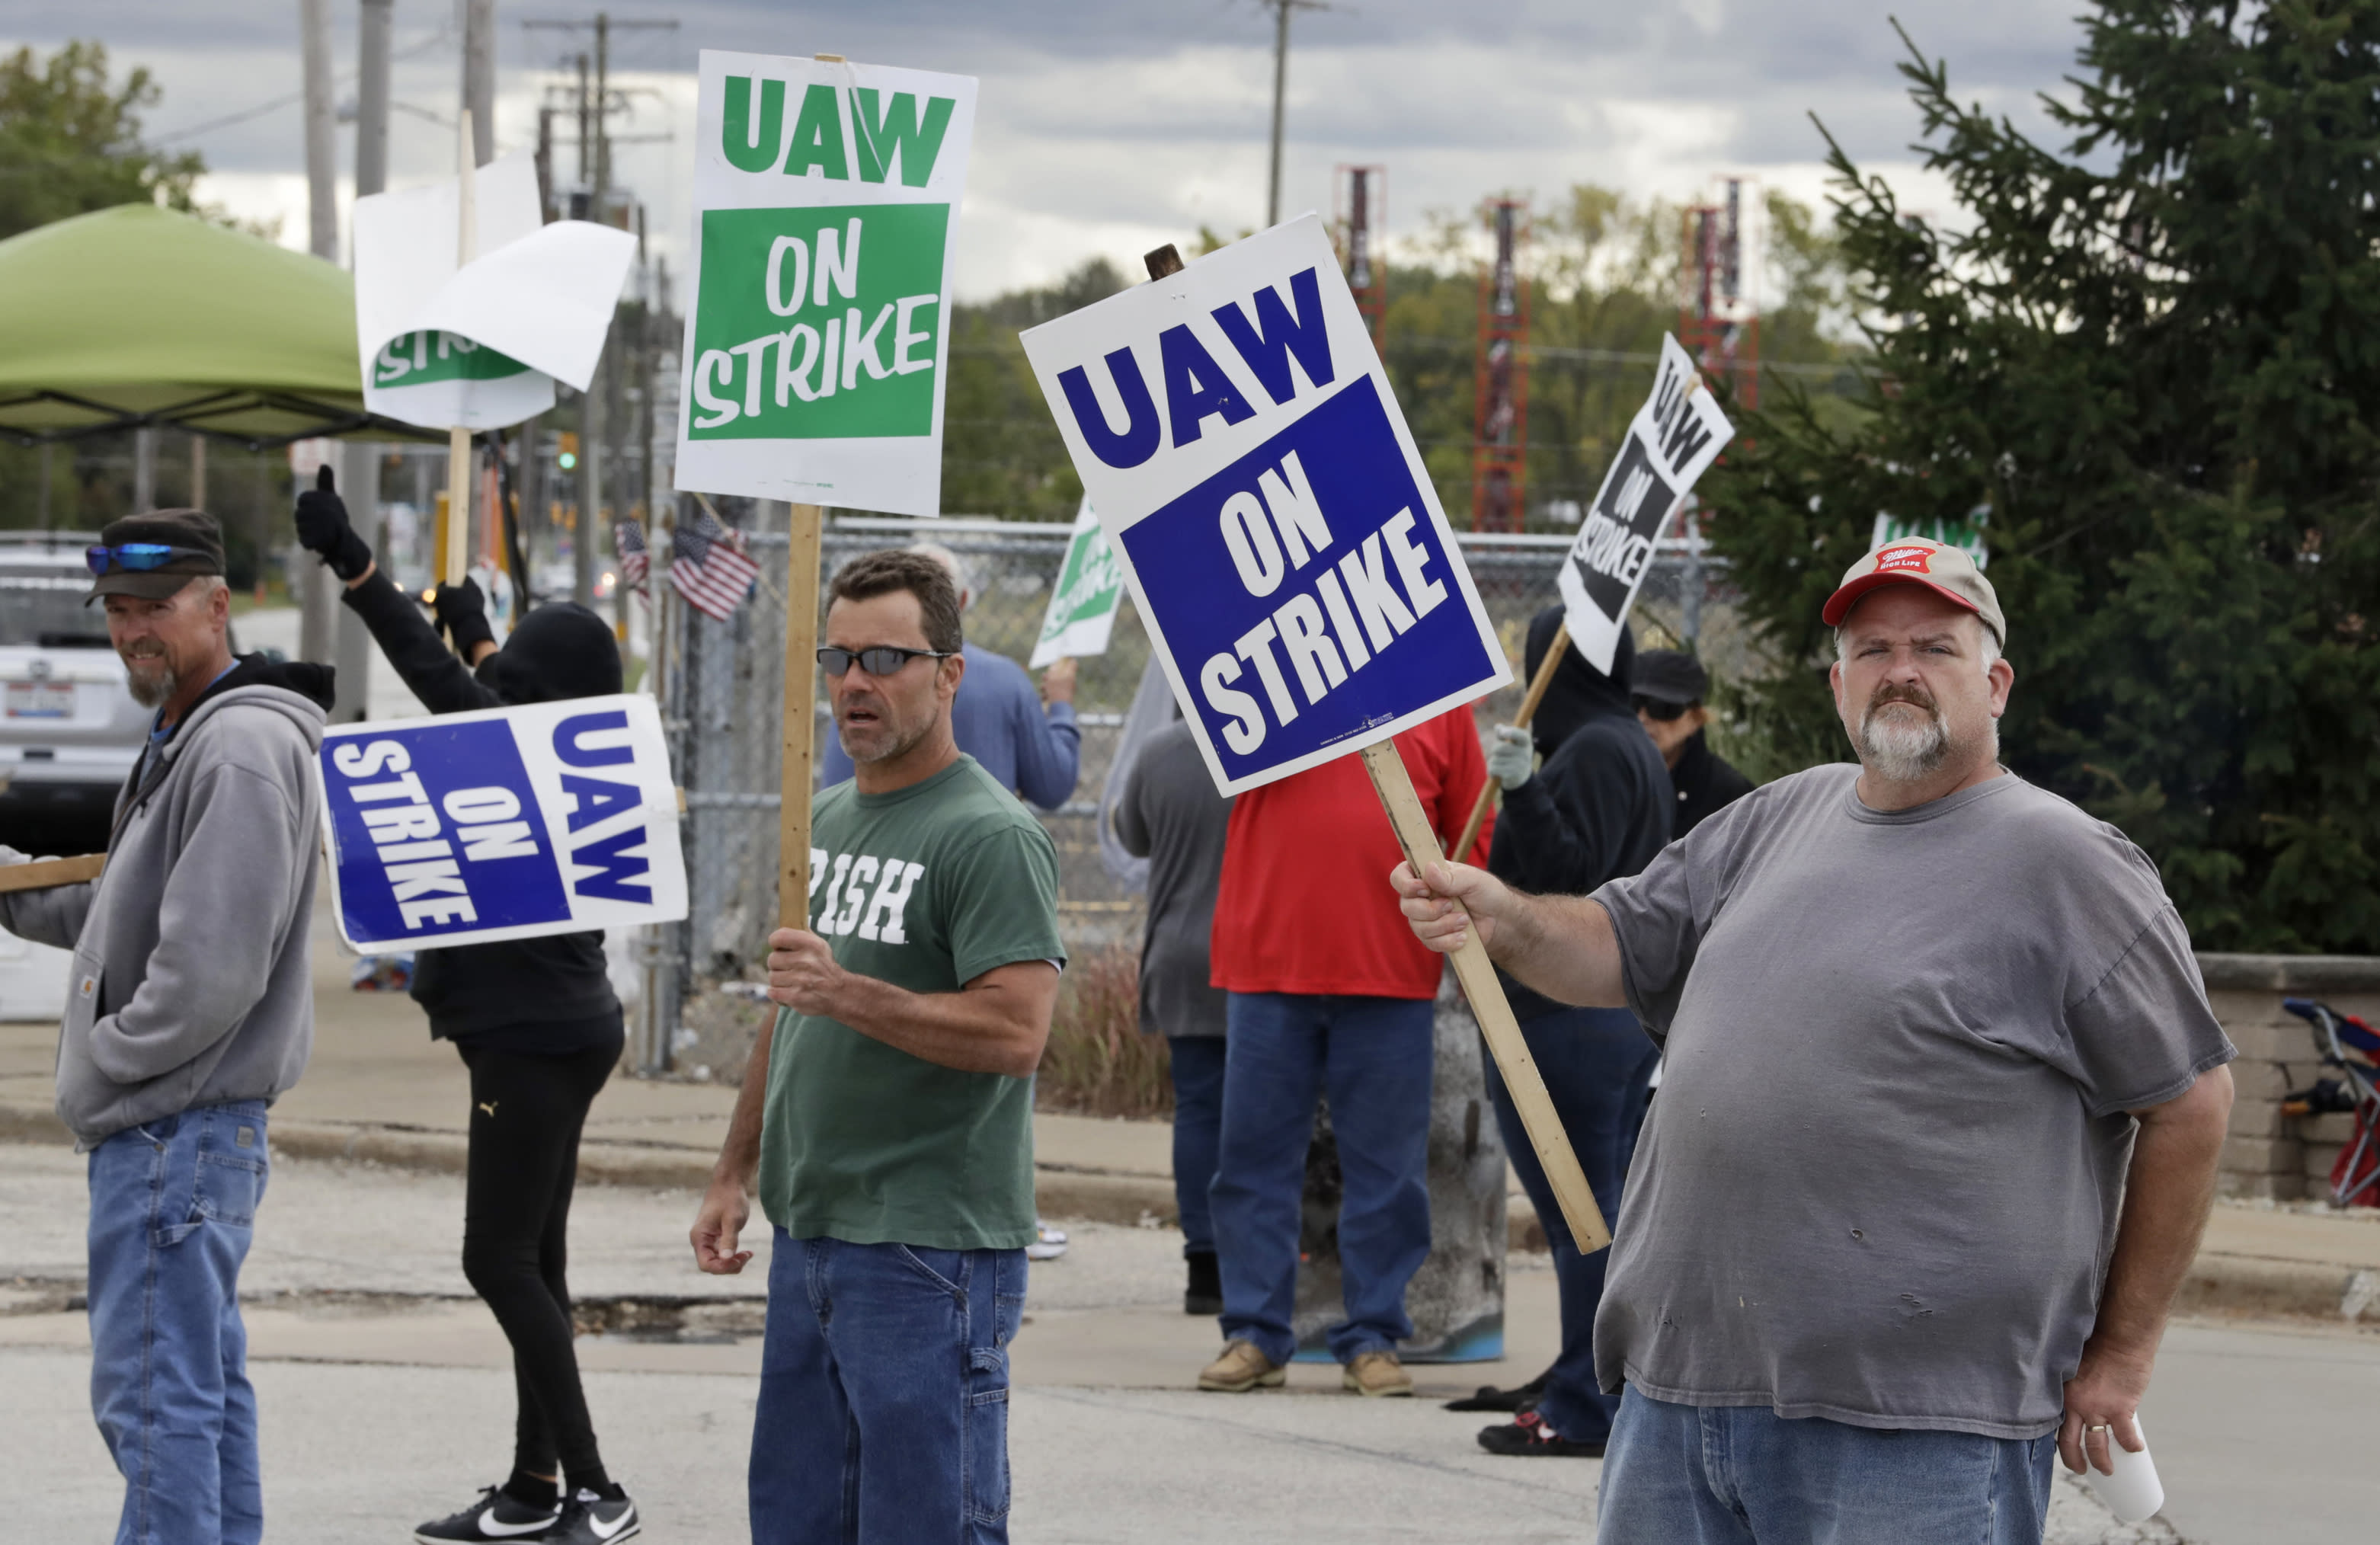 UAW talks take turn for worse; settlement not near